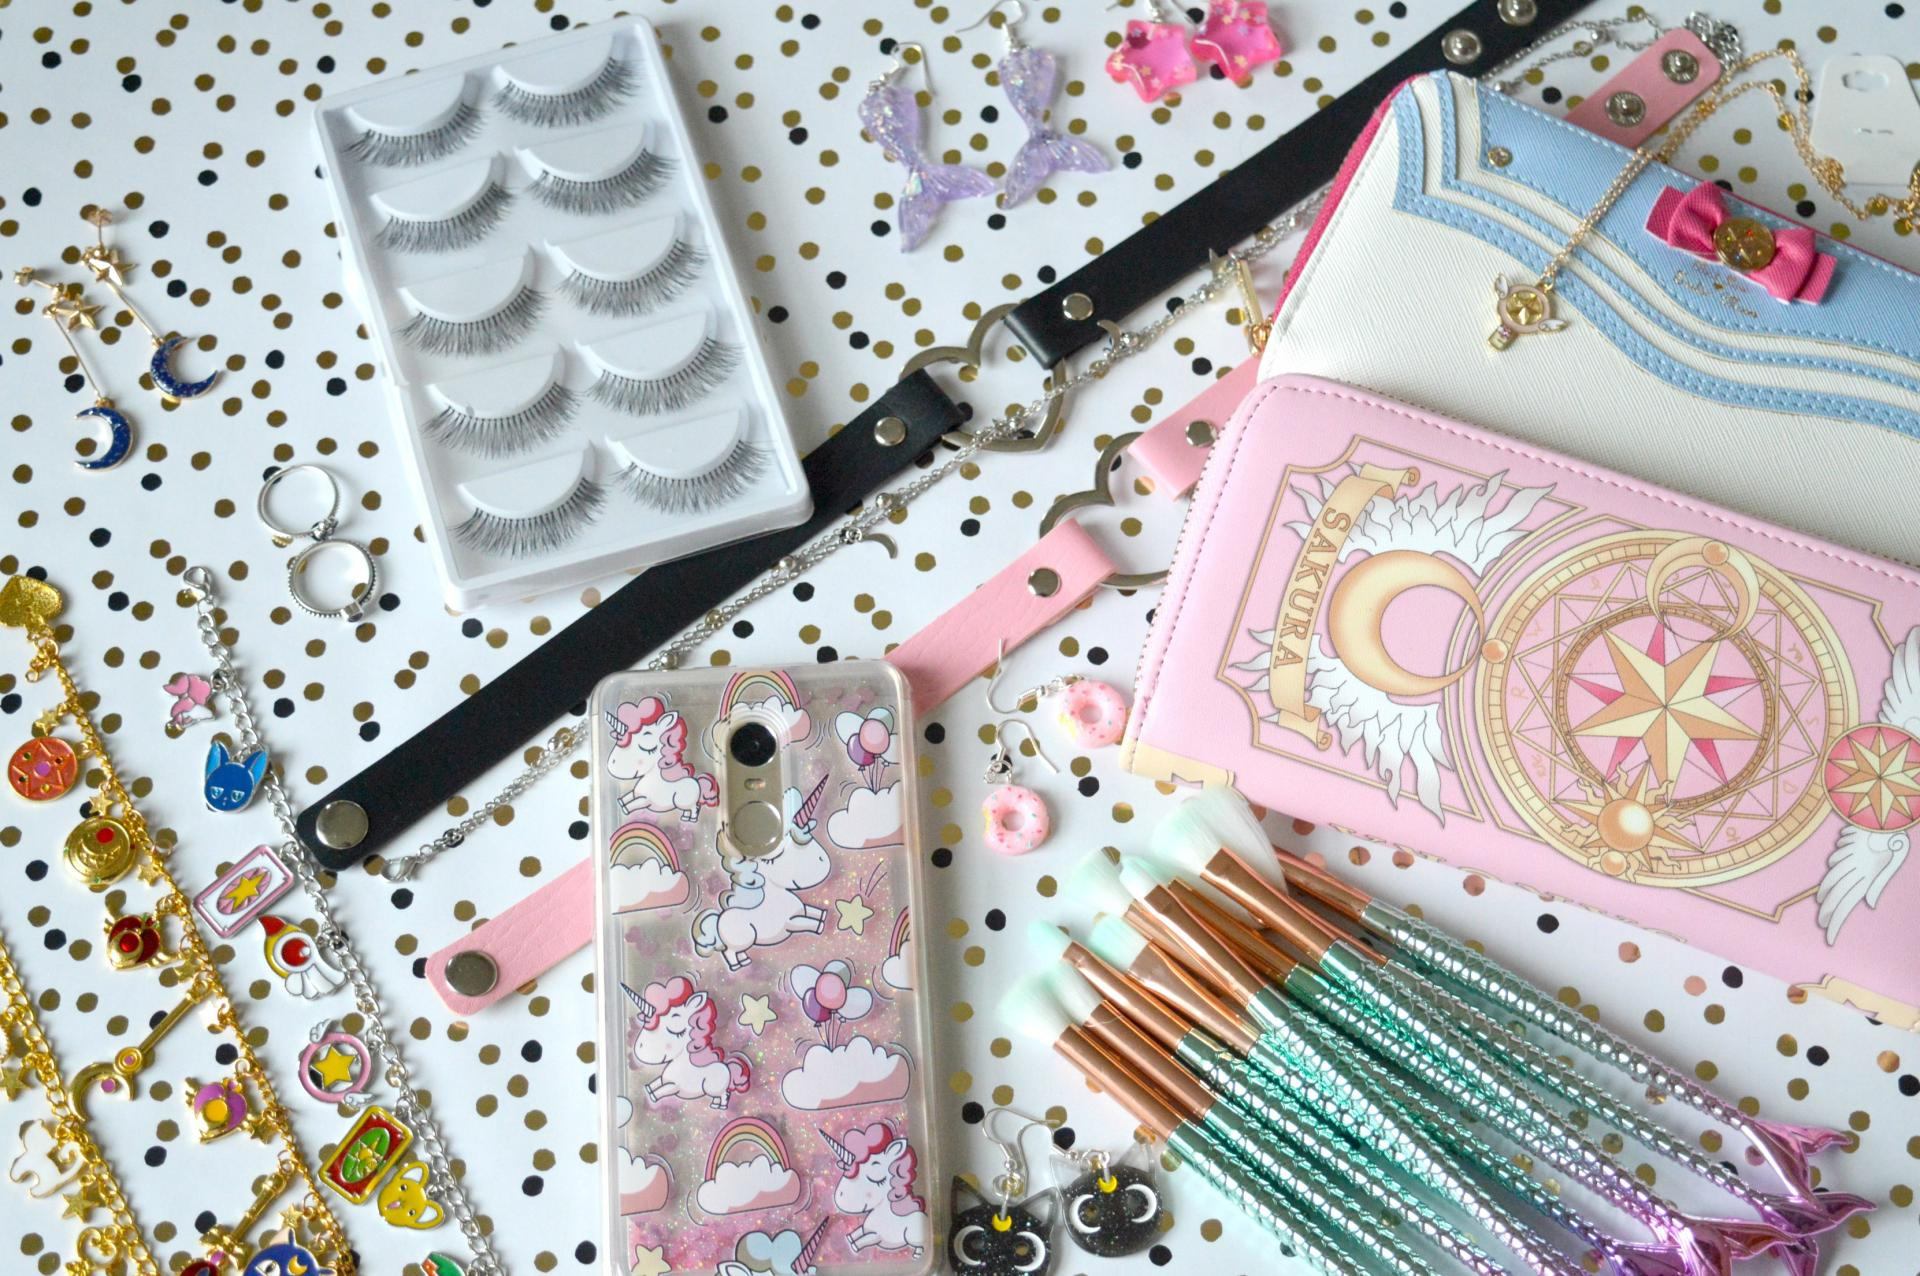 What Cute Items From AliExpress Can You Get In January?